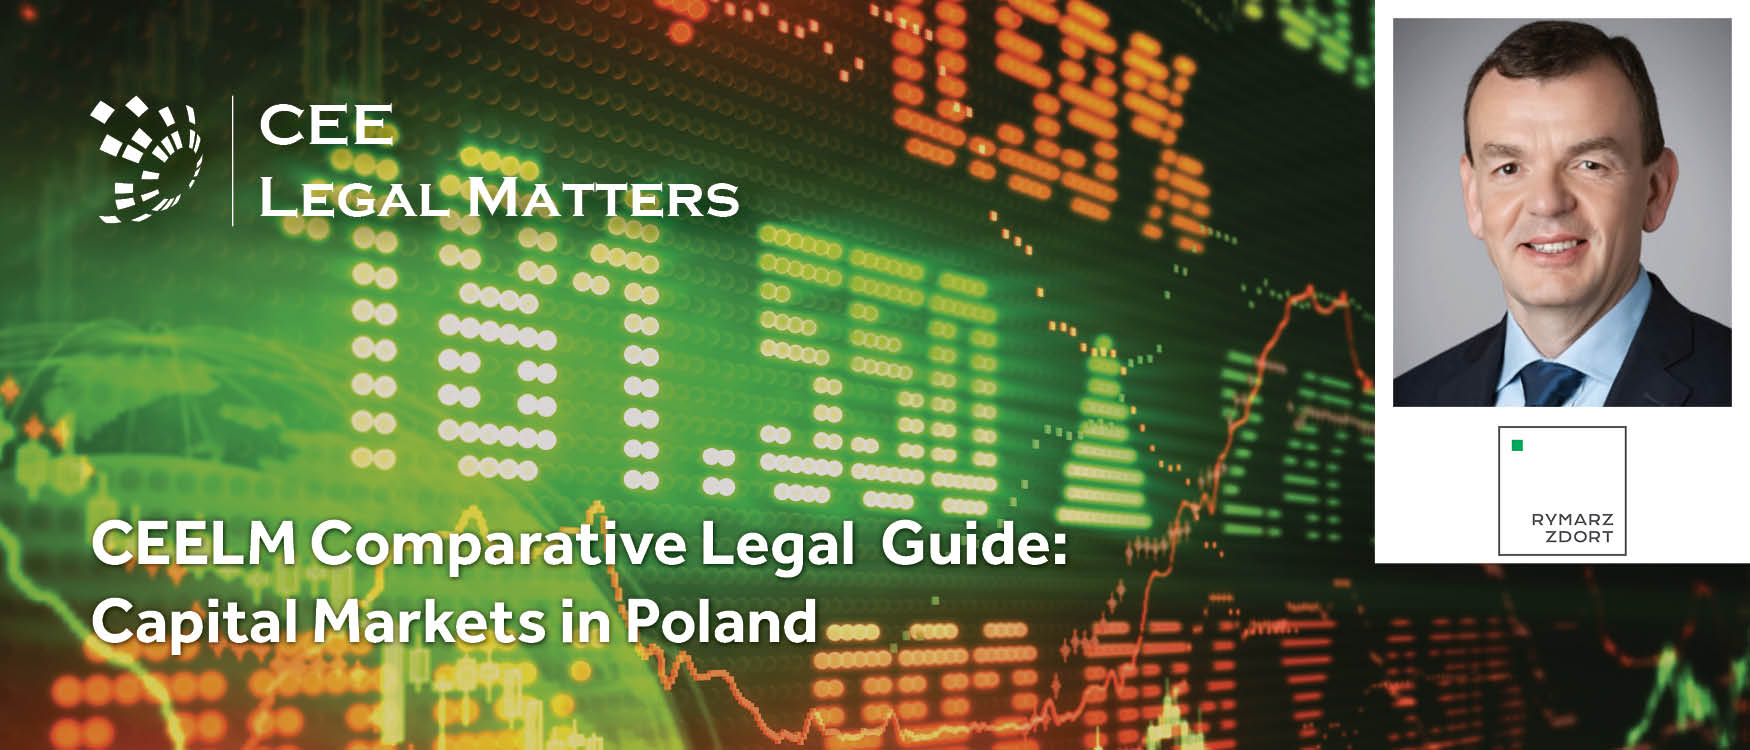 Capital Markets in Poland